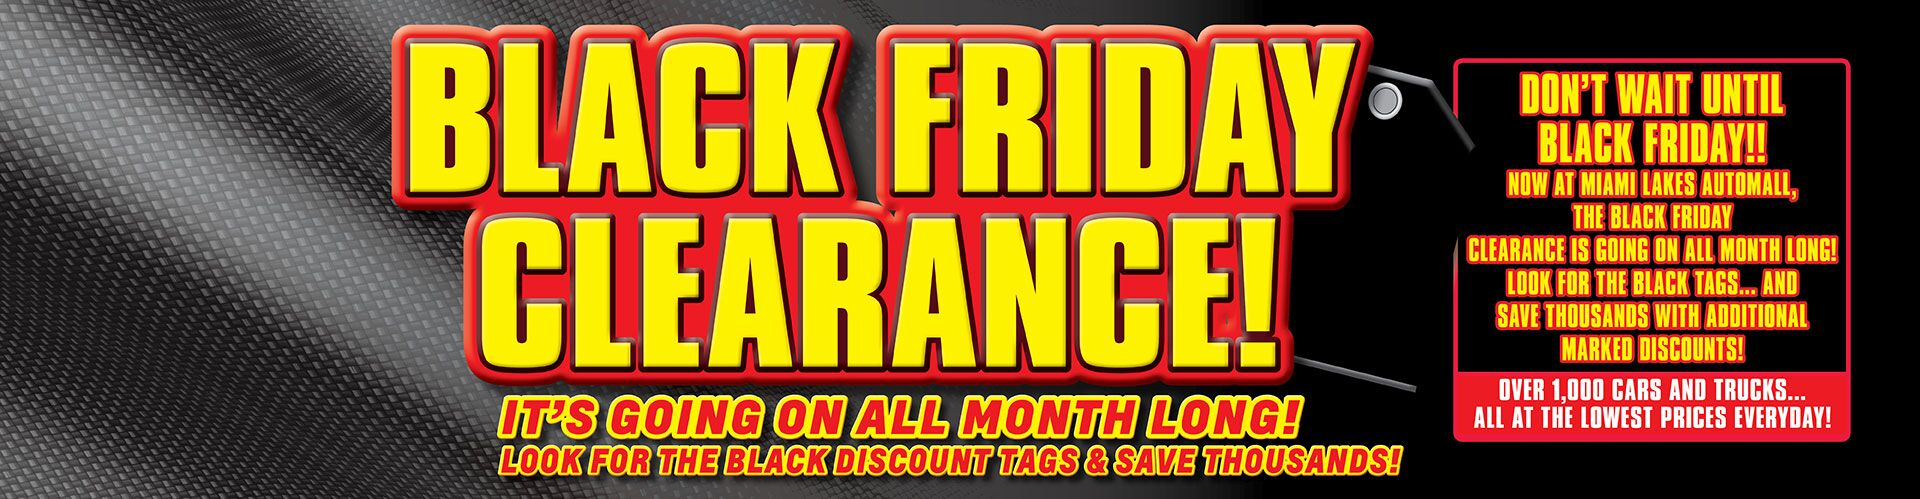 Black Friday Clearance! - All Month Long!